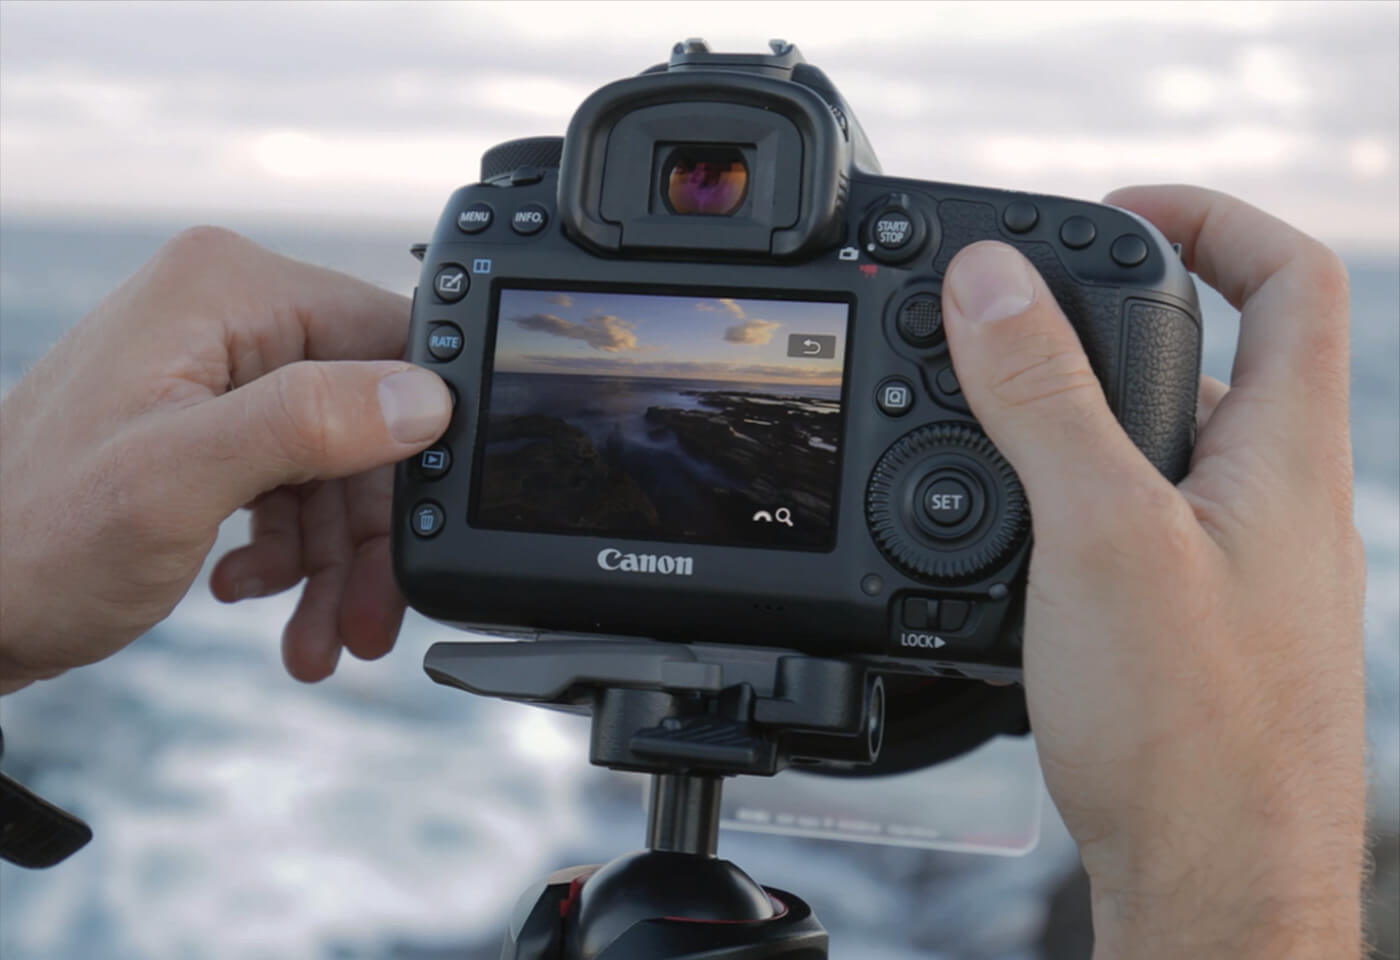 Lifestyle image of Canon Camera in use